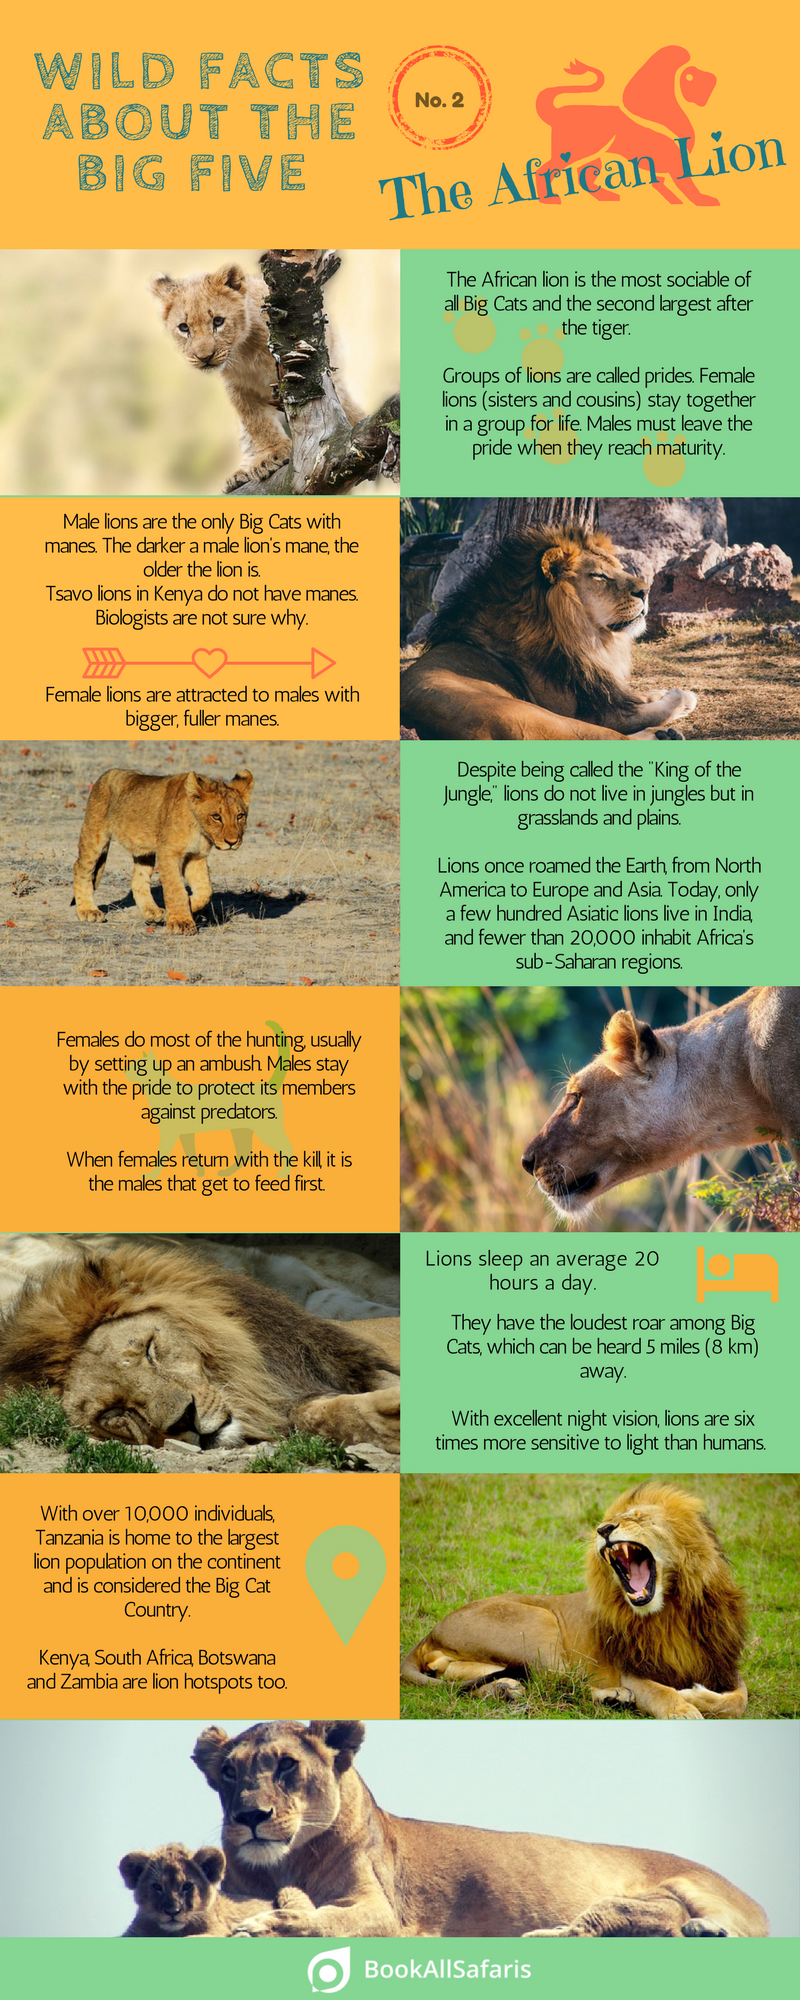 Wild Facts About the Big Five No. 2 the African Lion